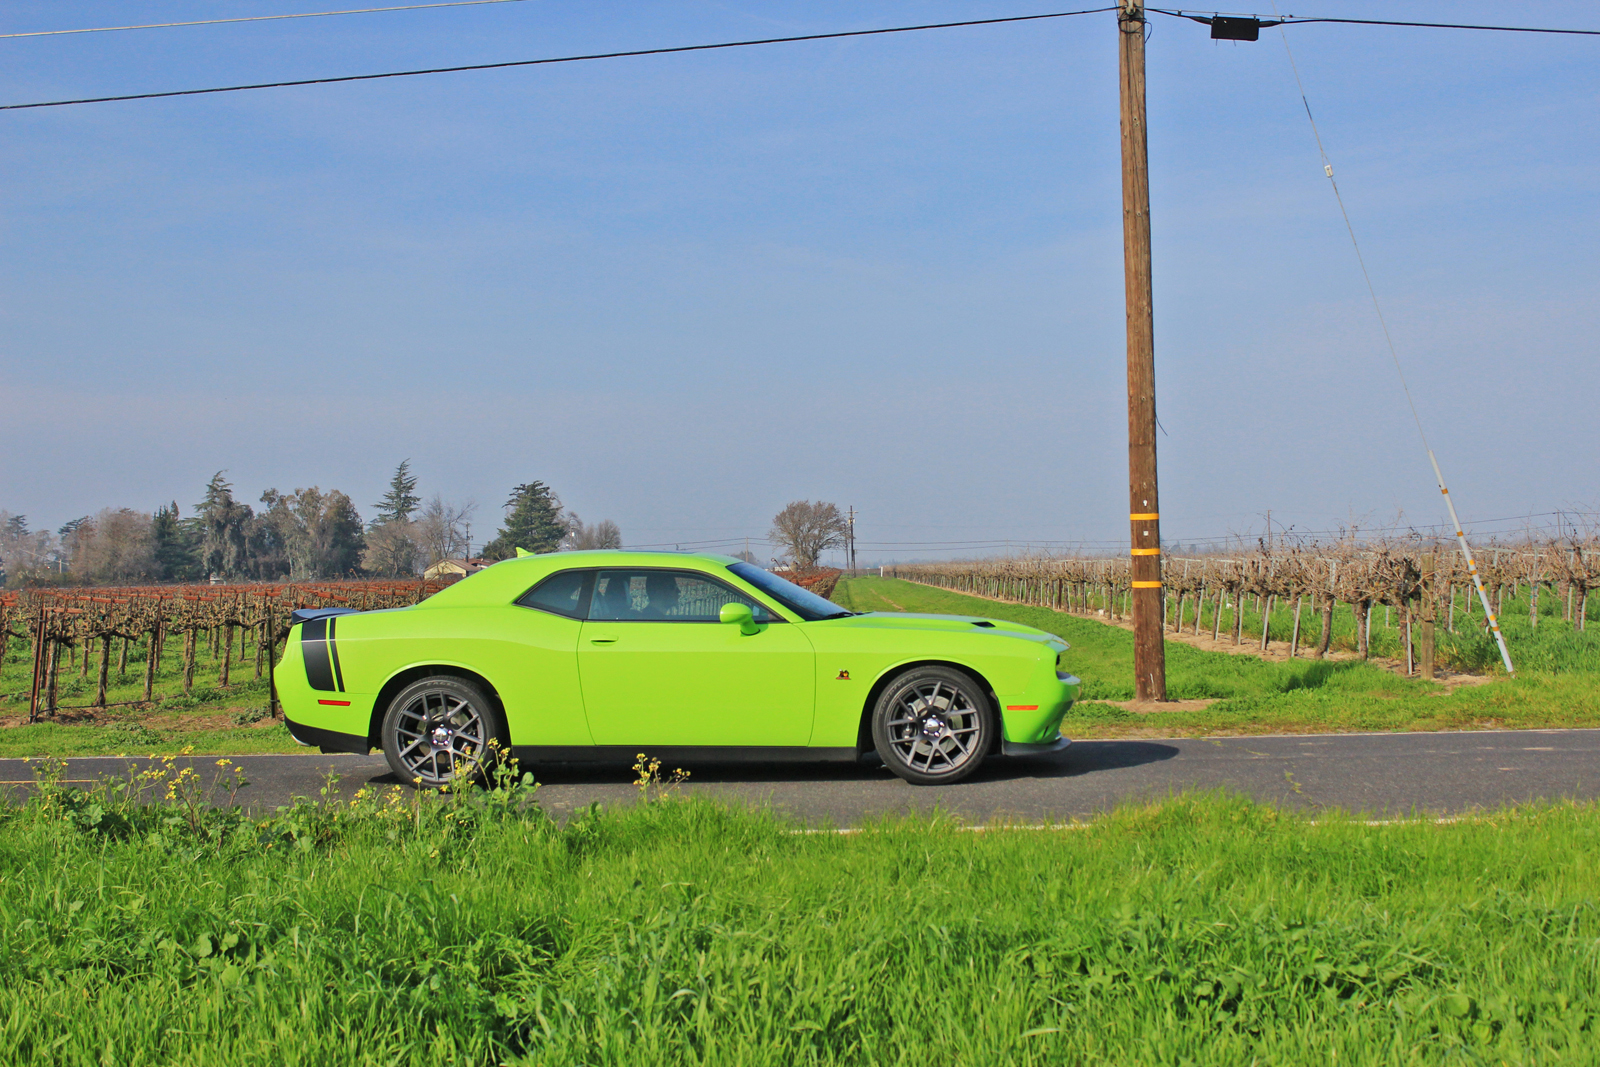 What Does Rt Stand For Dodge >> 2015 Dodge Challenger R/T Scat Pack – Carfanatics Blog